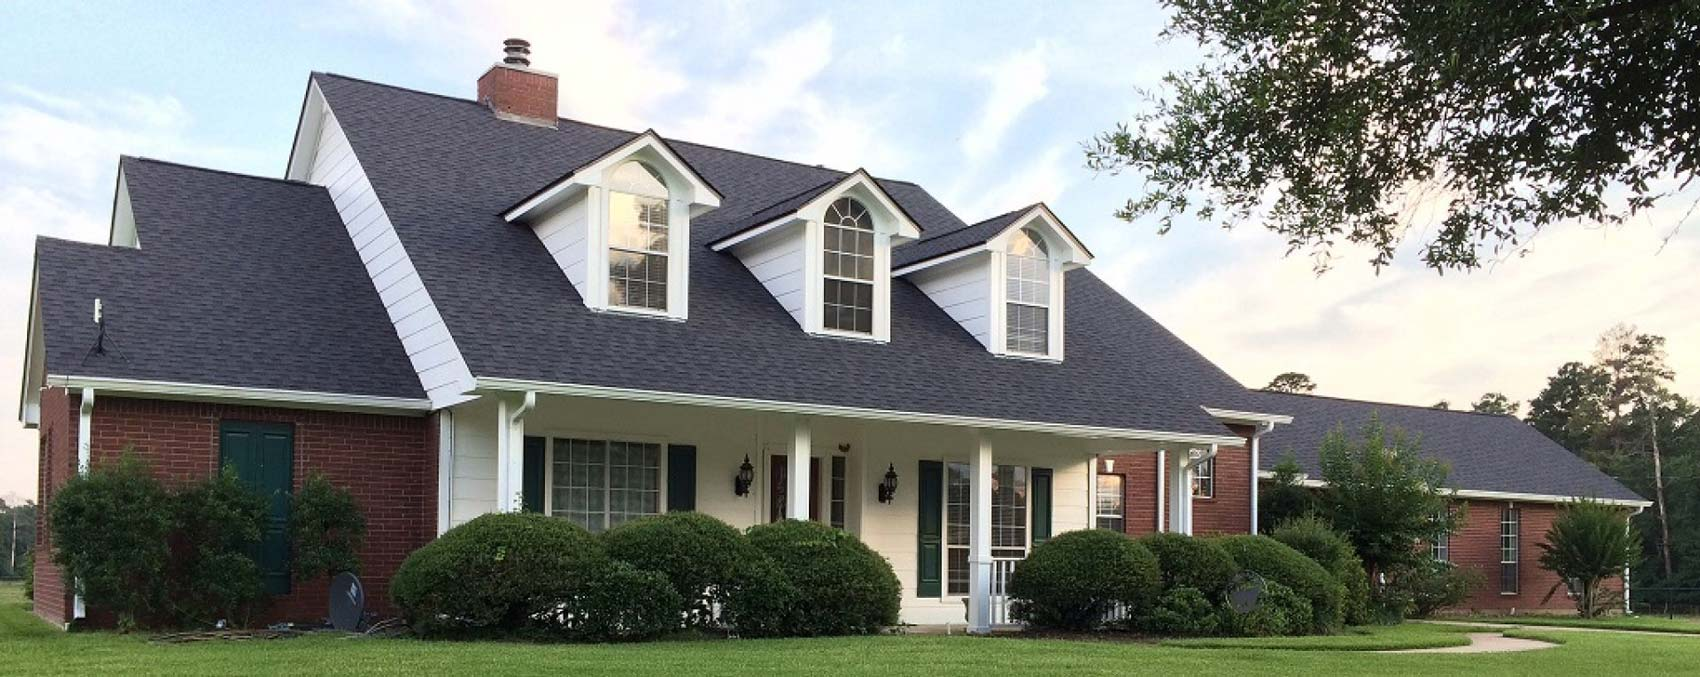 Target Roofing |  Residential and Commercial Roofing Services